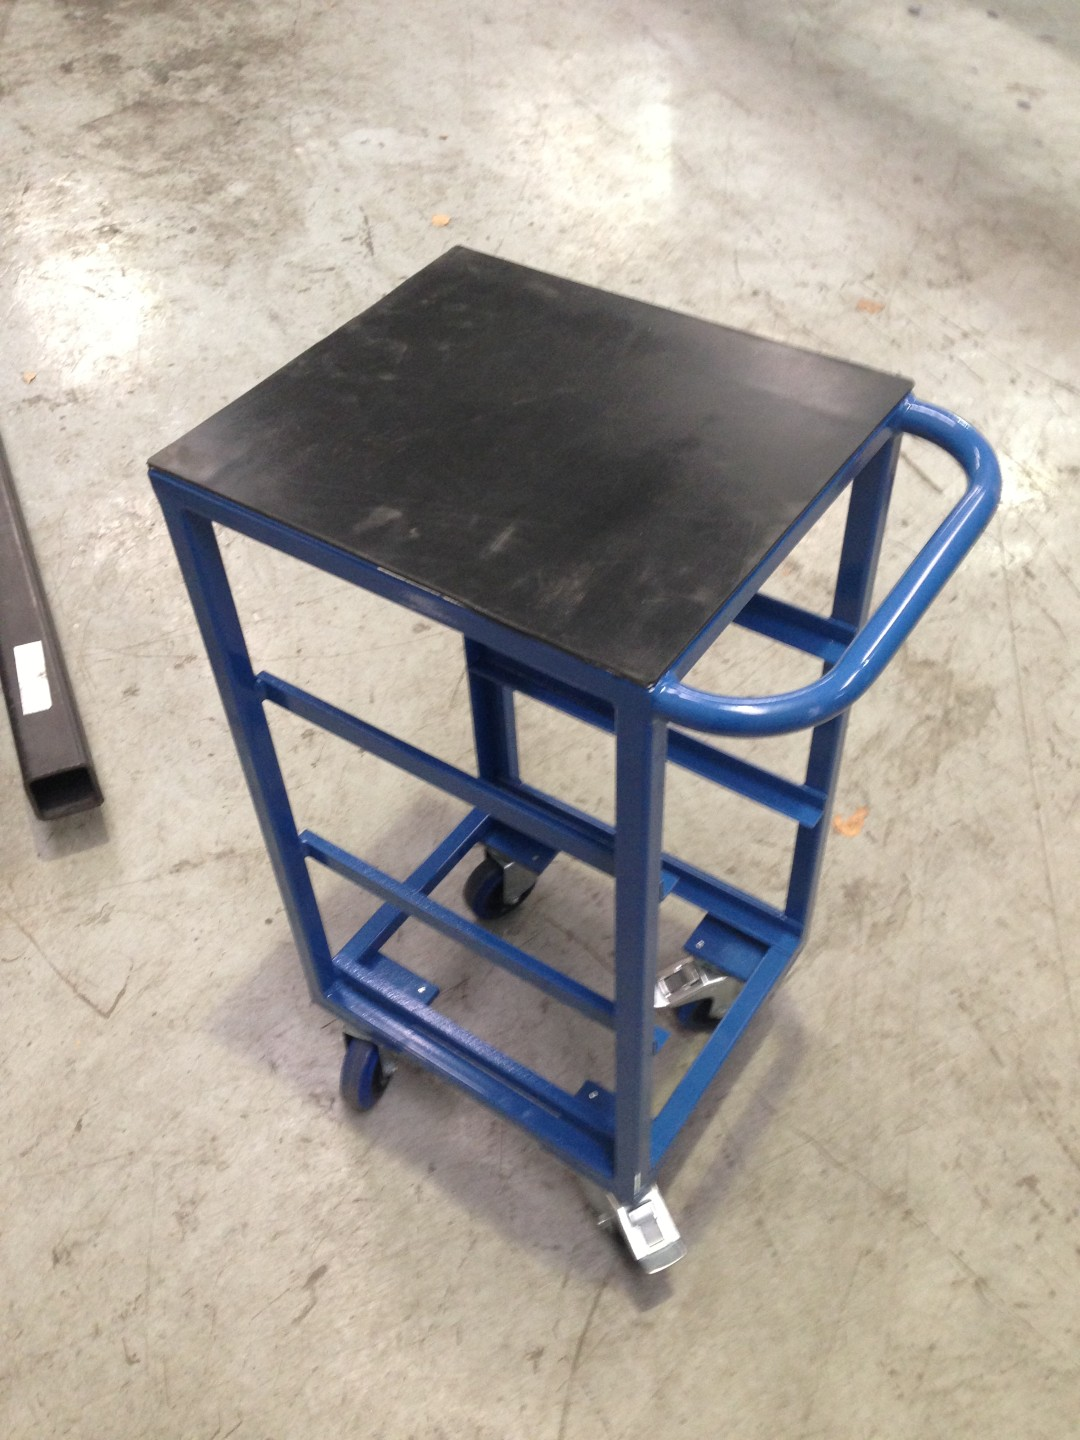 AD151-2013-04 – WIP and Queue Trolley for Cell 1